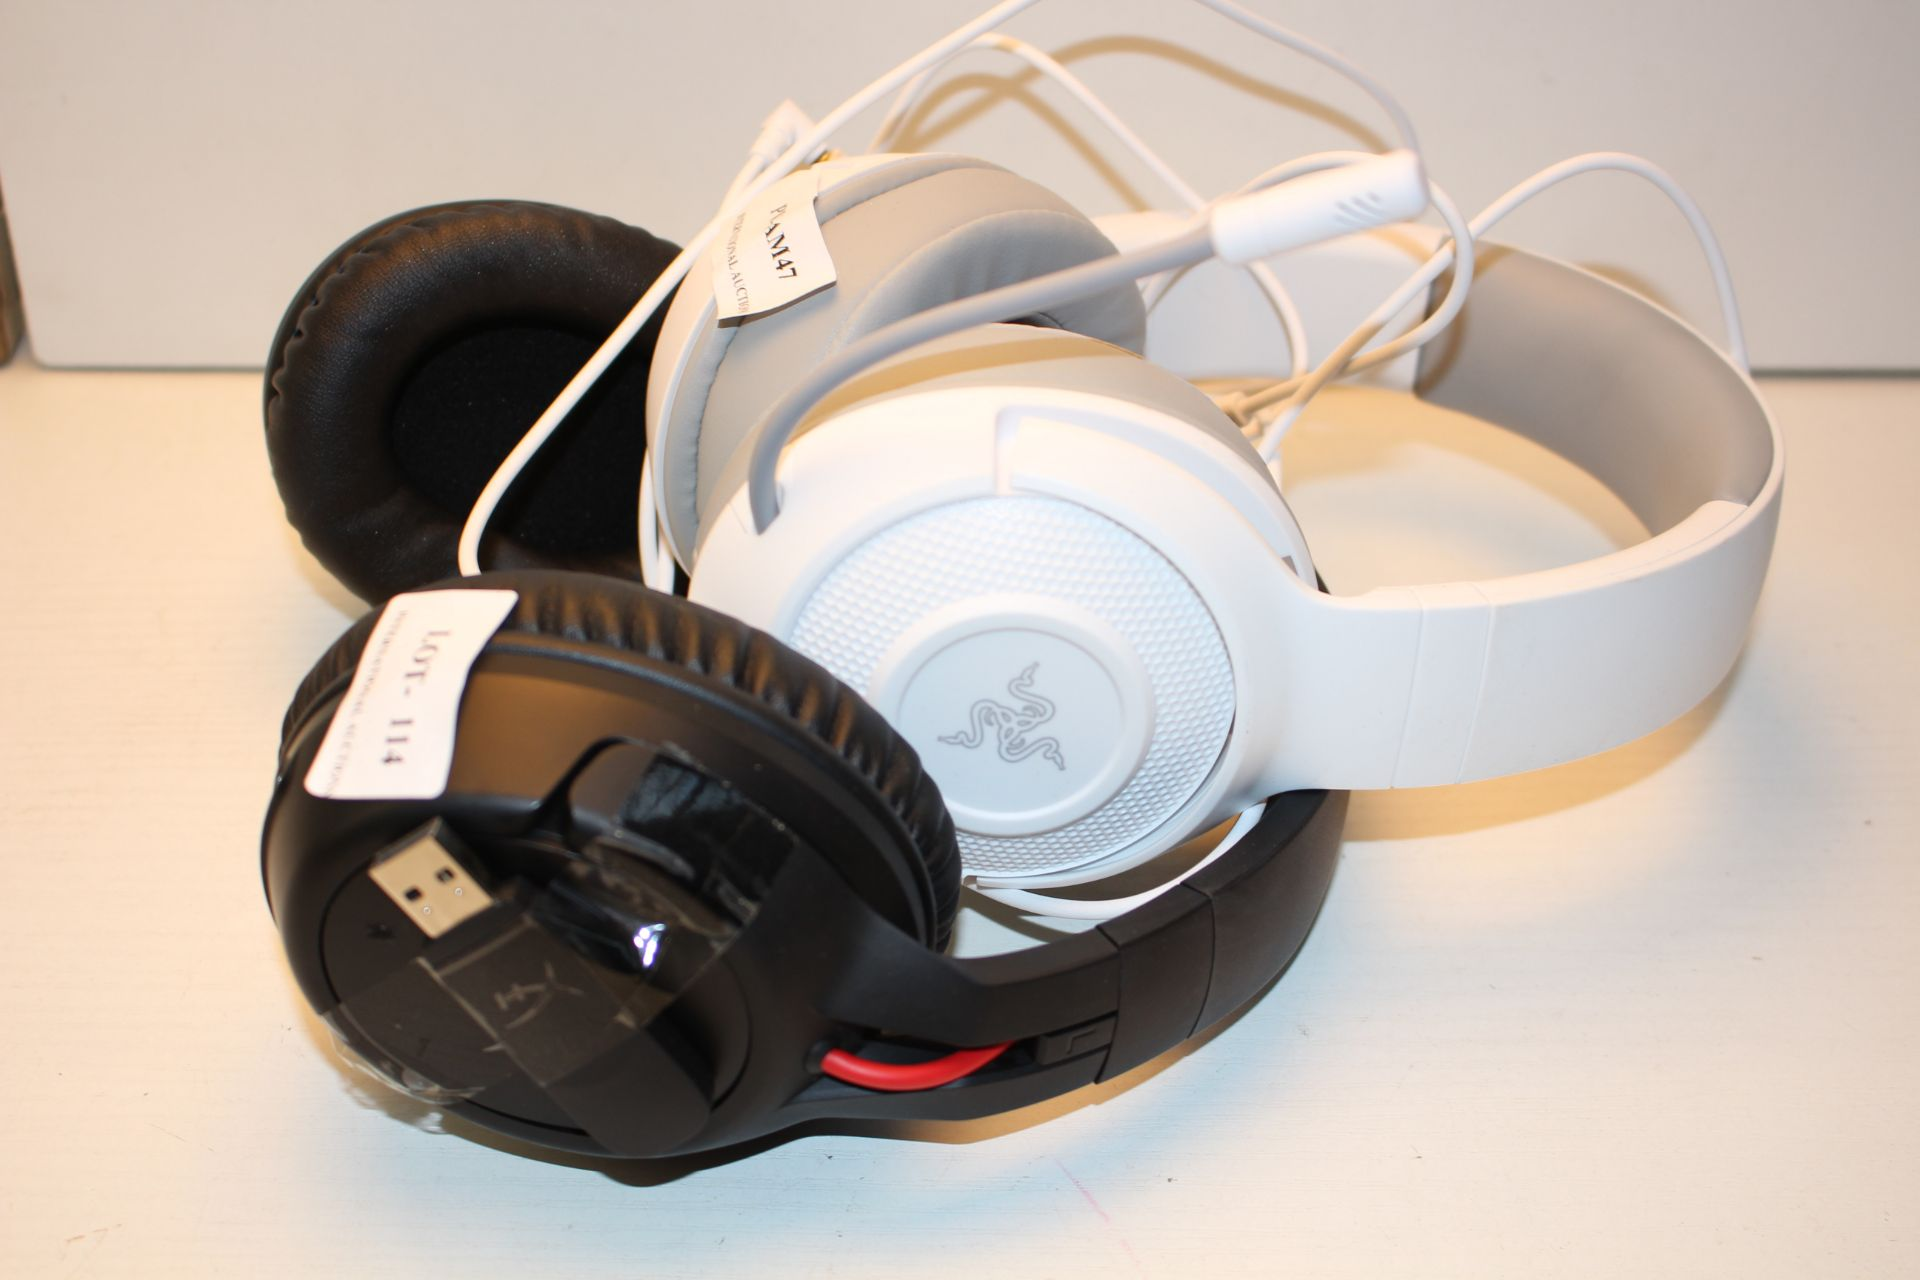 2X UNBOXED GAMING HEADSETS BY RAZER & HYPER X (IMAGE DEPICTS STOCK)Condition ReportAppraisal